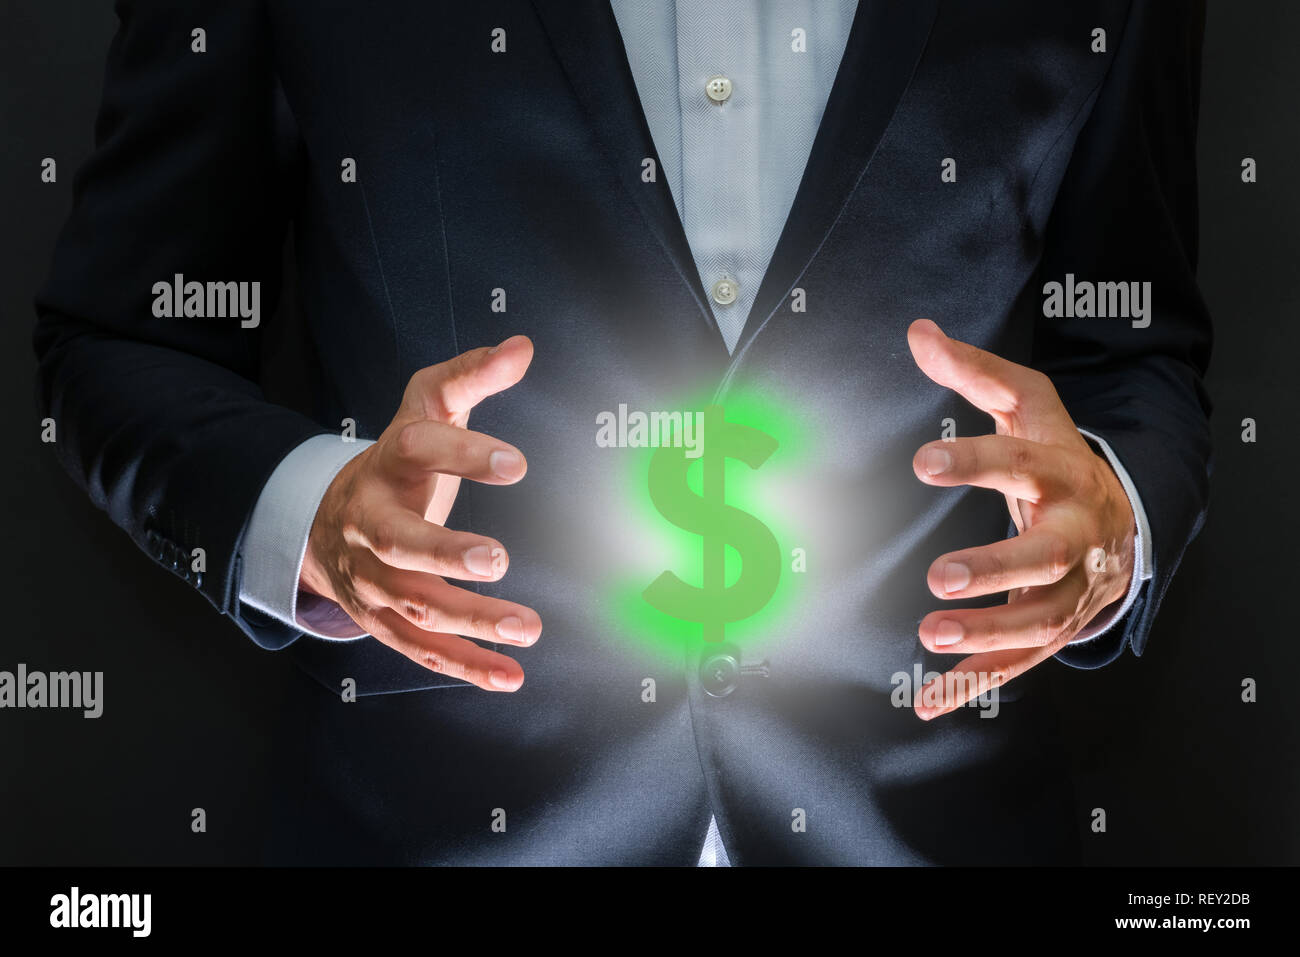 Controlling money concept. Currency symbol - dollar sign between human hands. Money making and wealth - Stock Image